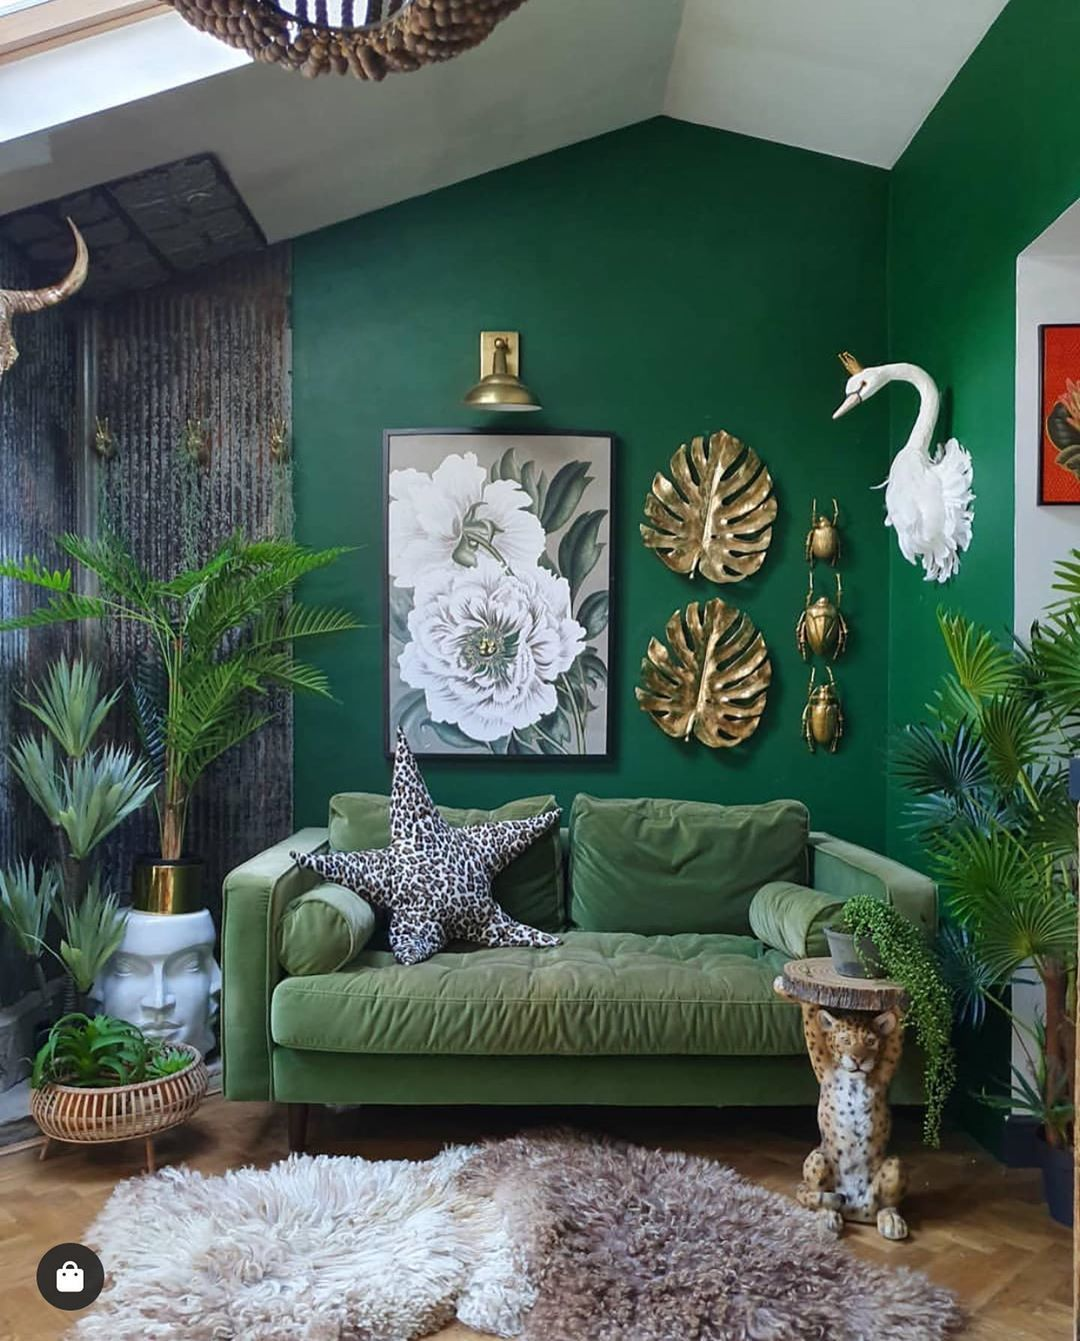 Hello Plant Lover On Instagram Loving The Green Wall Curated By Hellodecorlover Image By Hilaryandflo Home Decor Living Room Decor House Interior